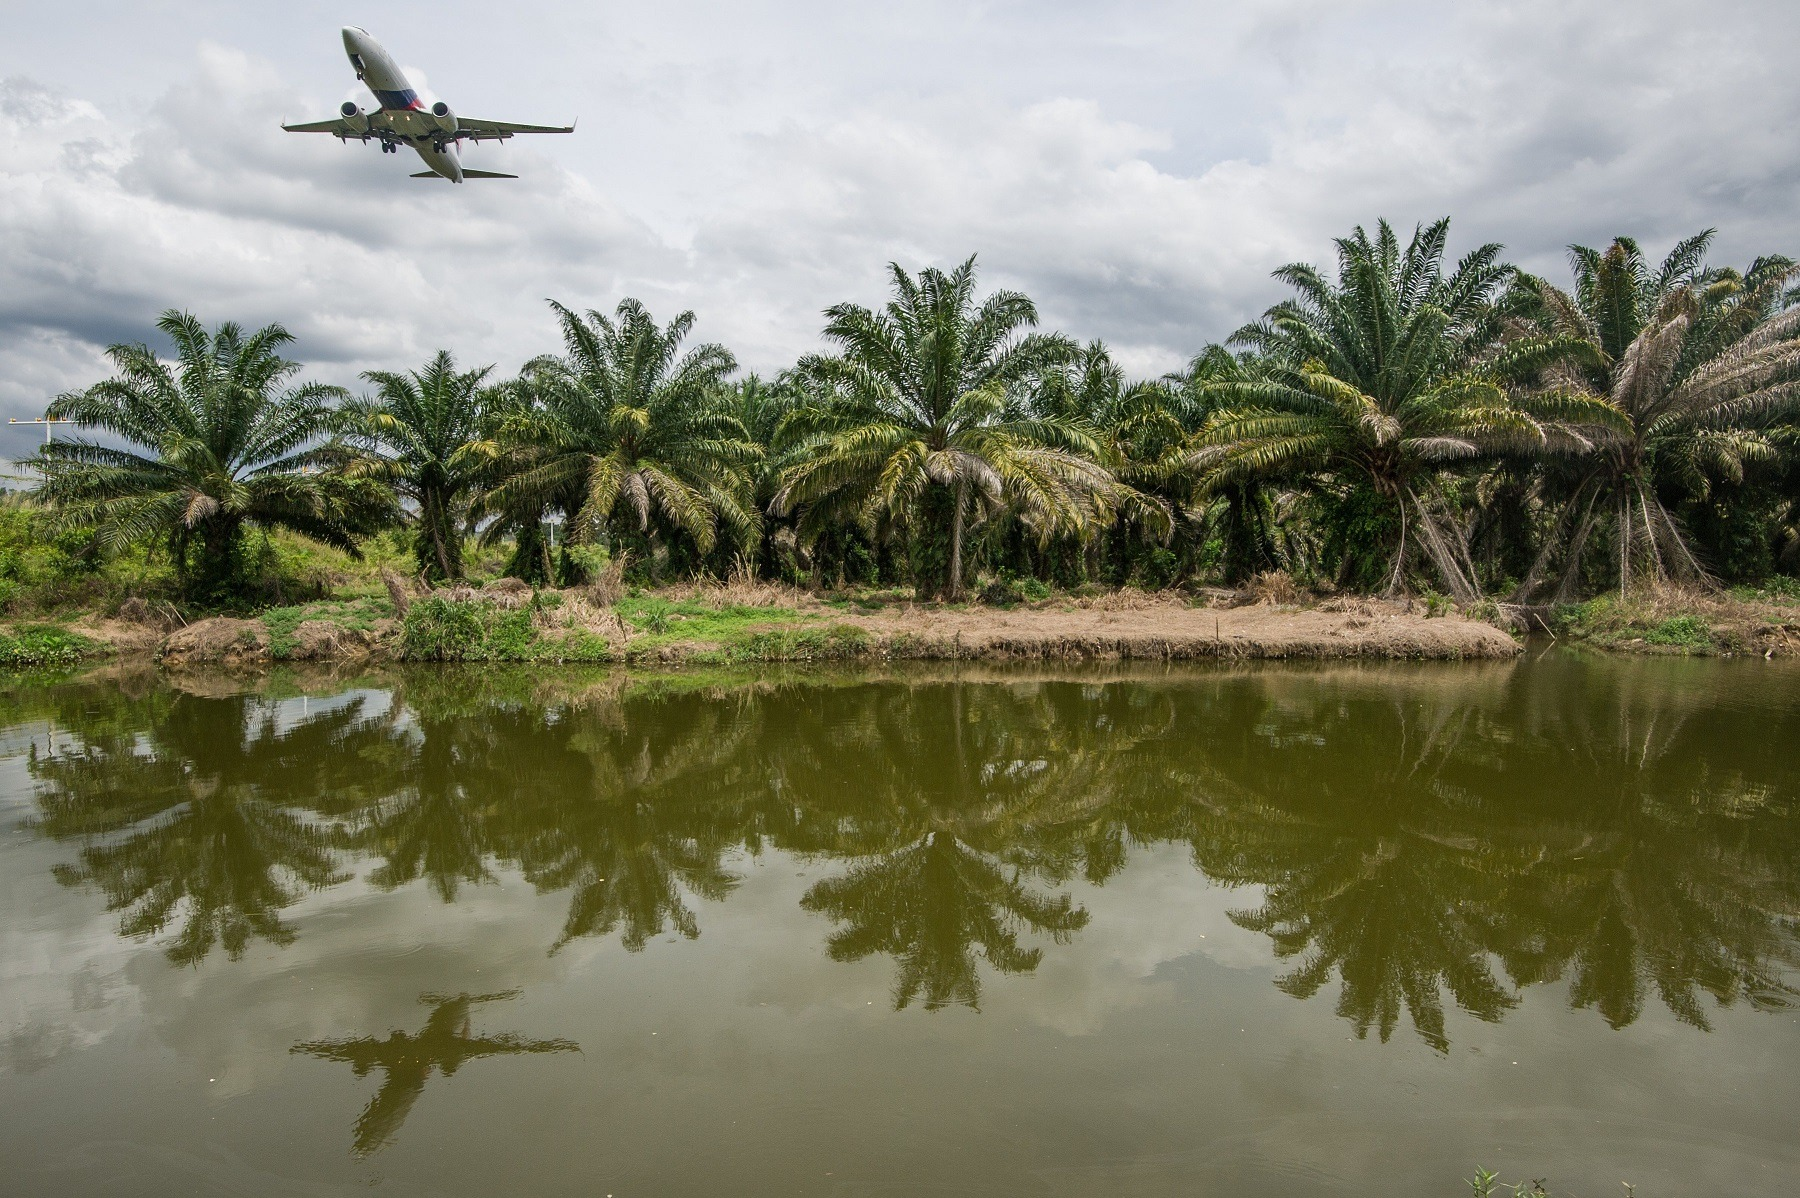 A Malaysia Airlines plane (L) is reflected as it flies over a river